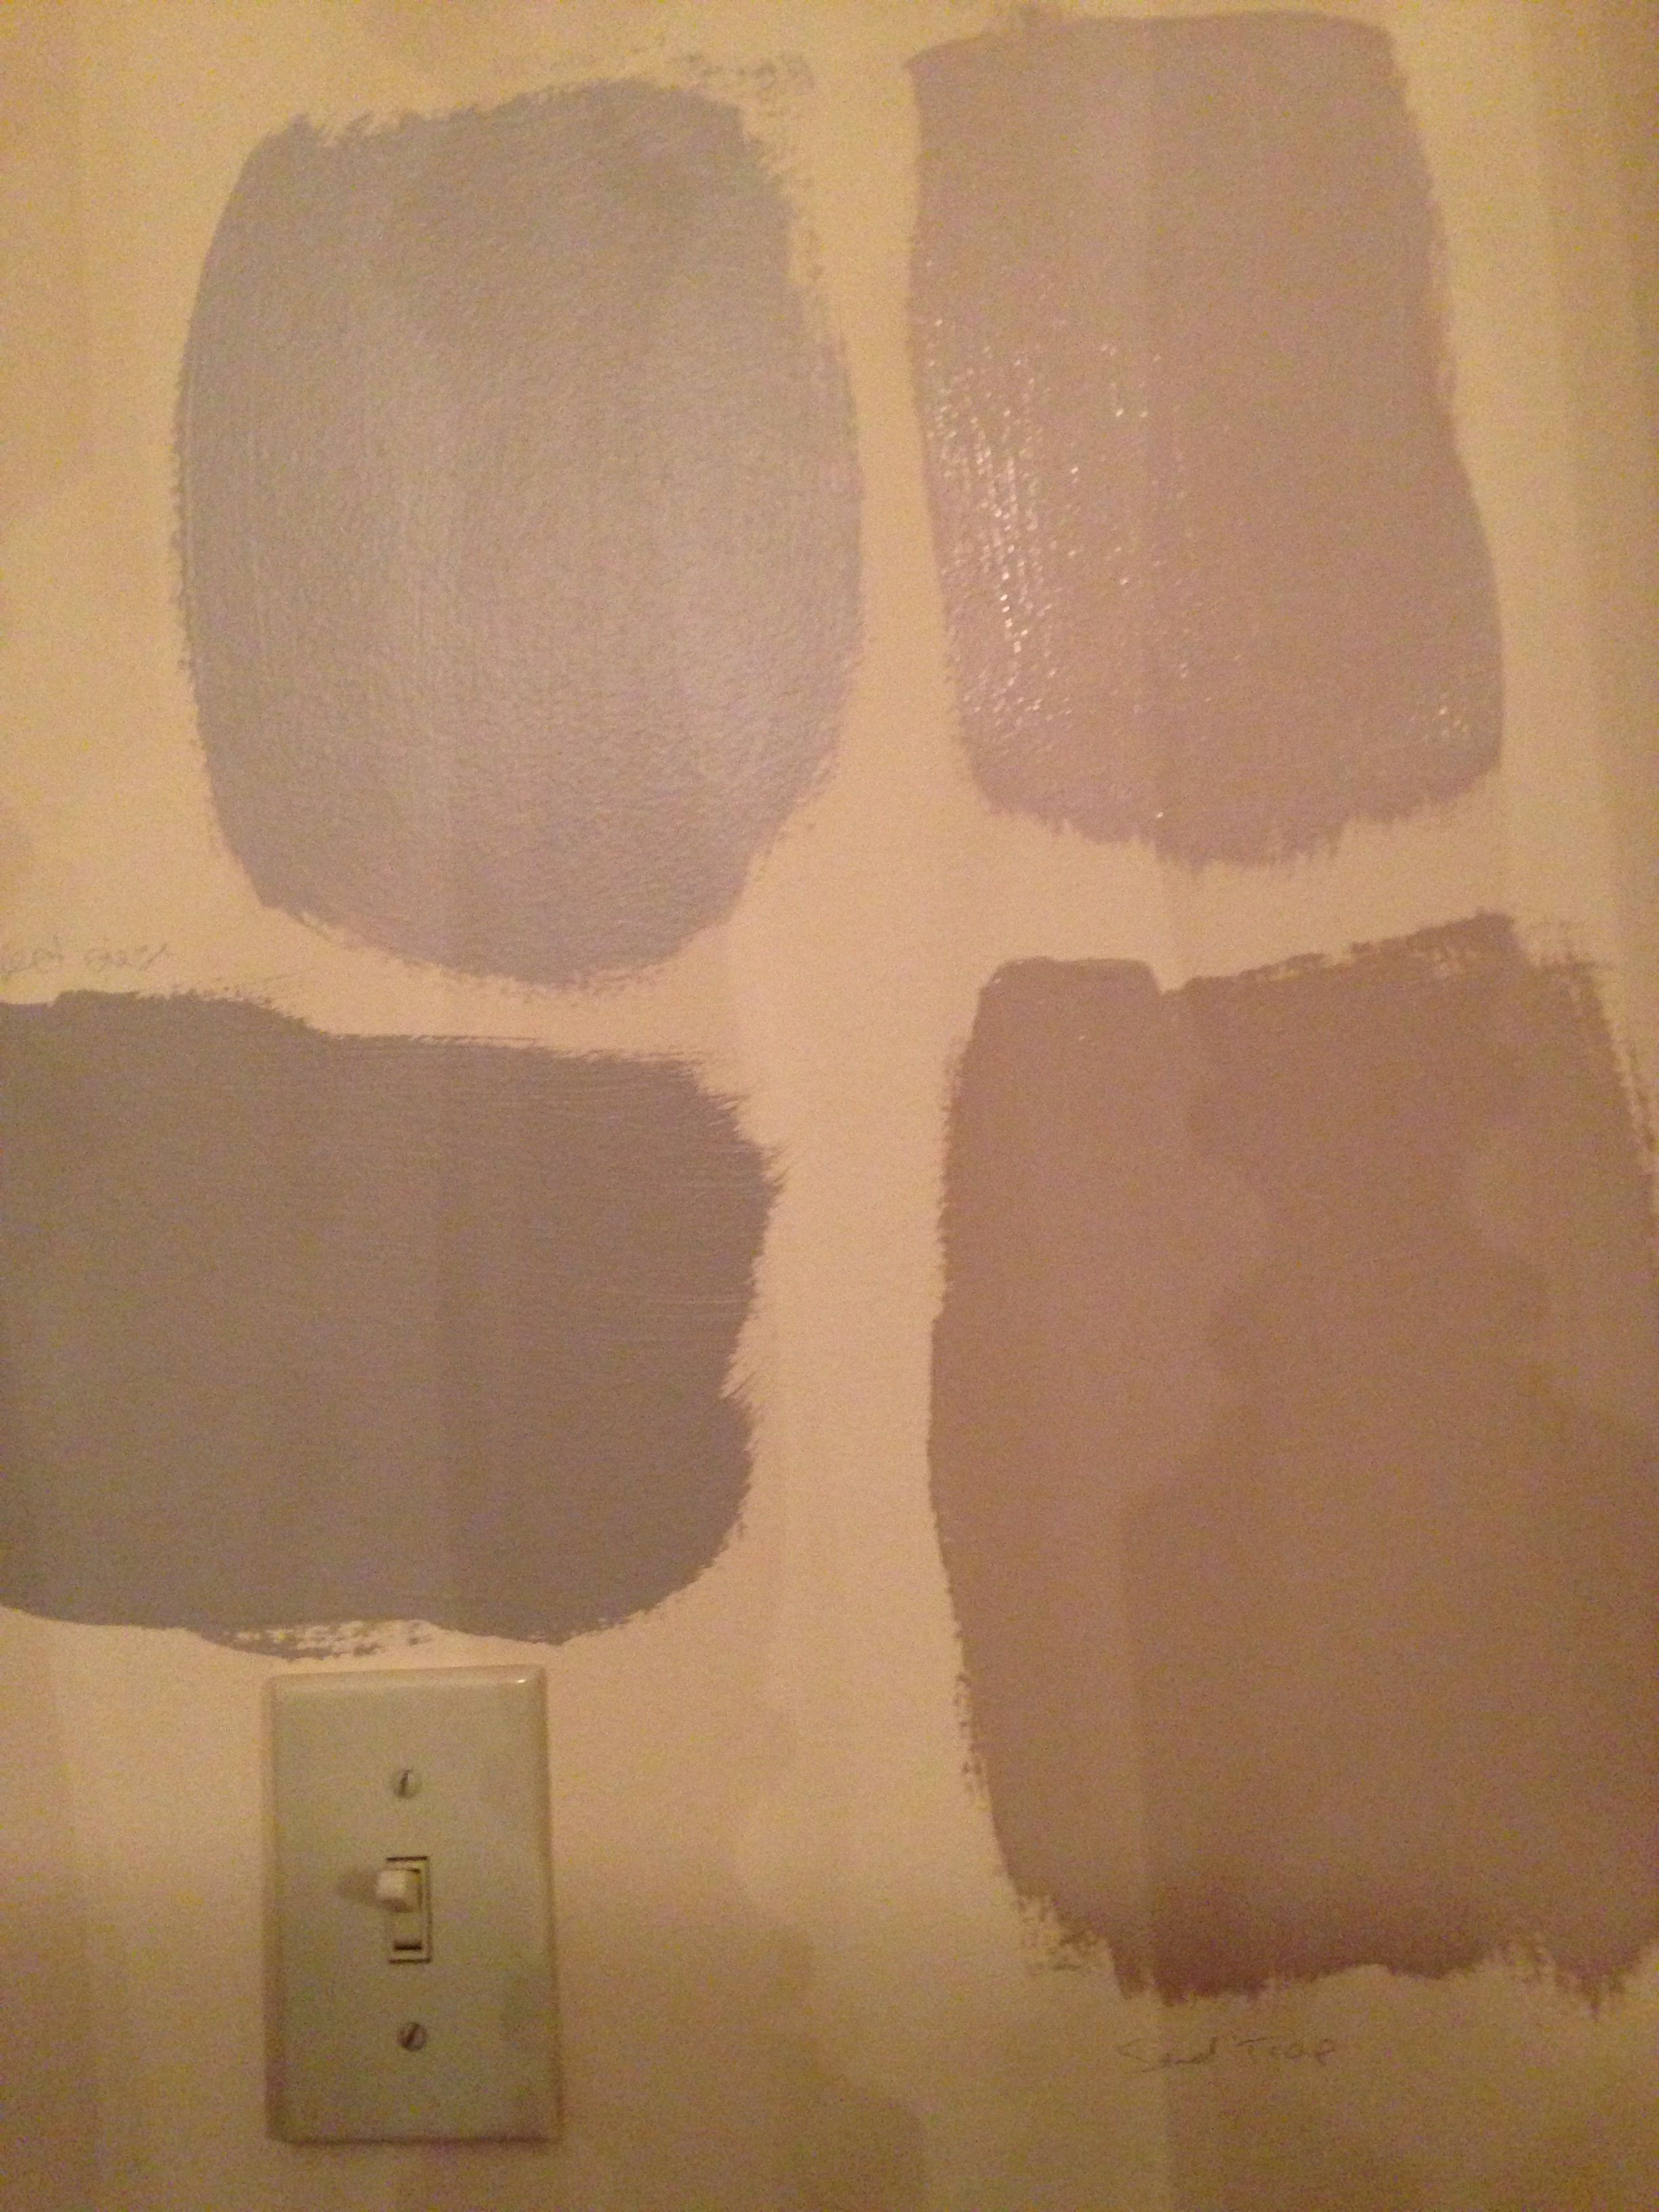 Sherwin Williams Neutrals Top Versatile Gray And